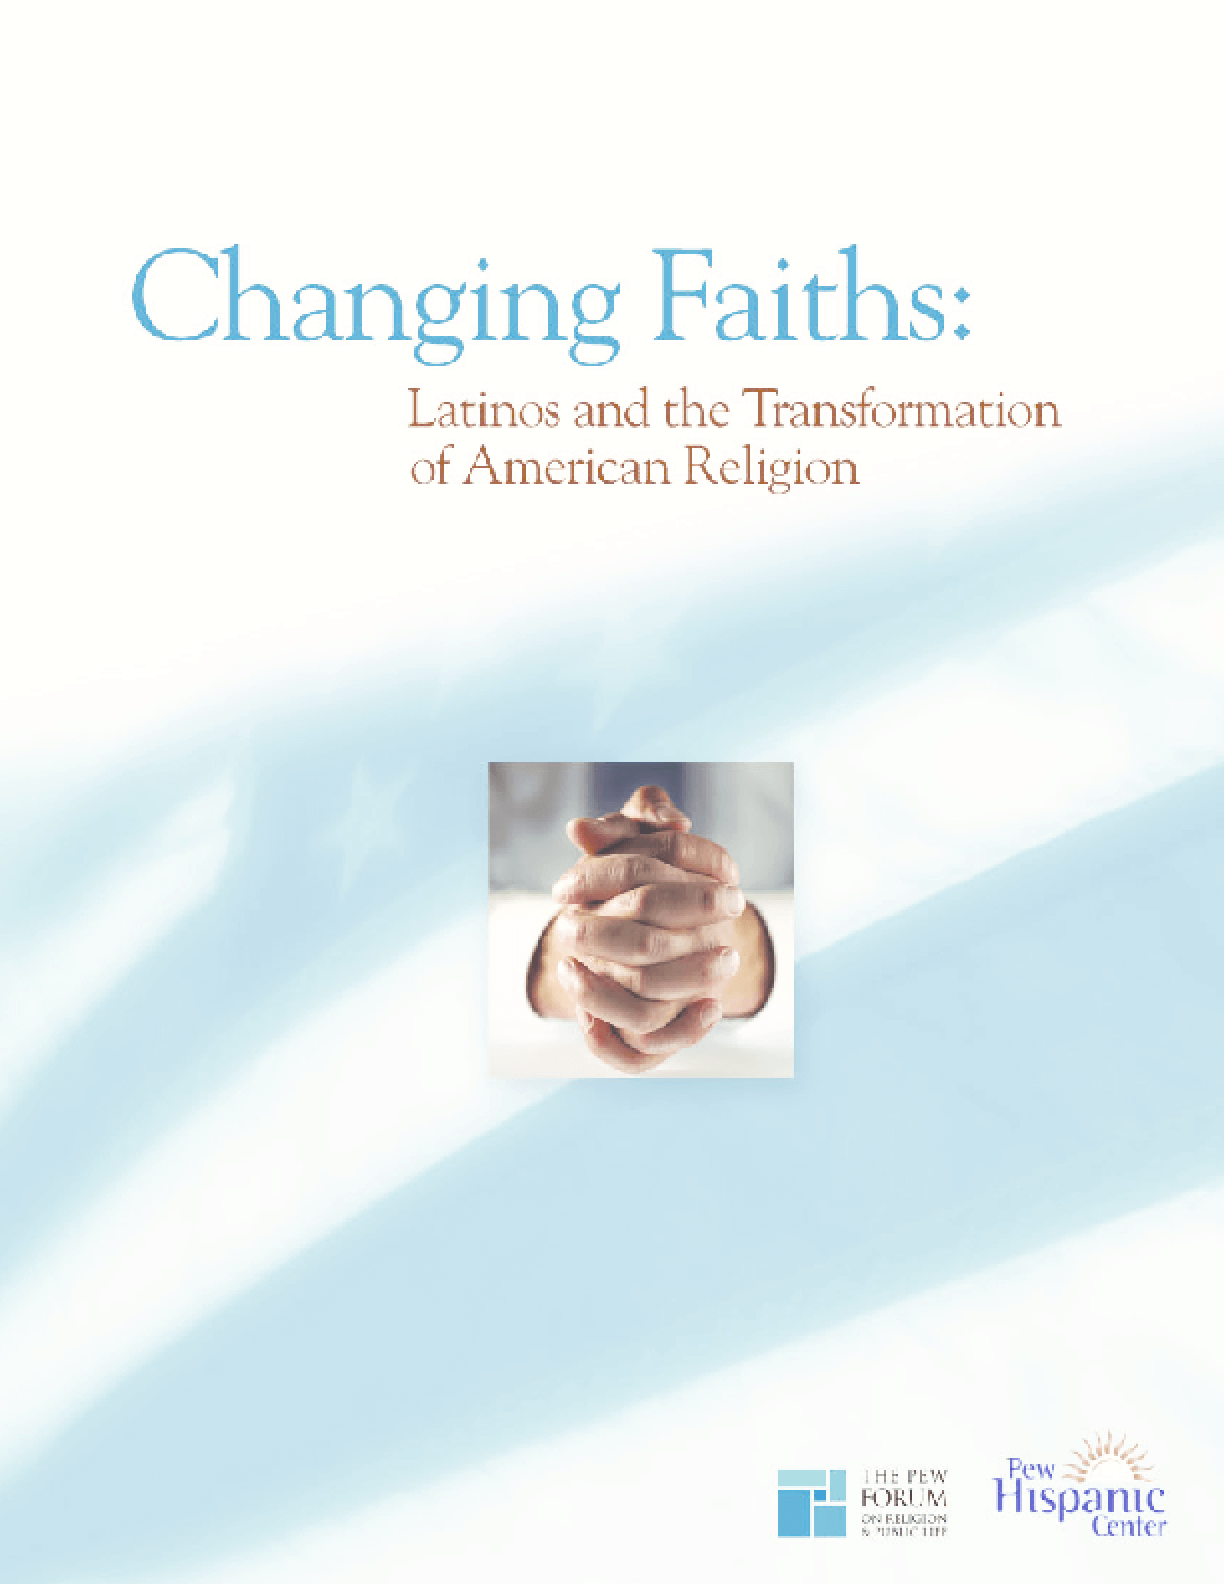 Changing Faiths: Latinos and the Transformation of American Religion